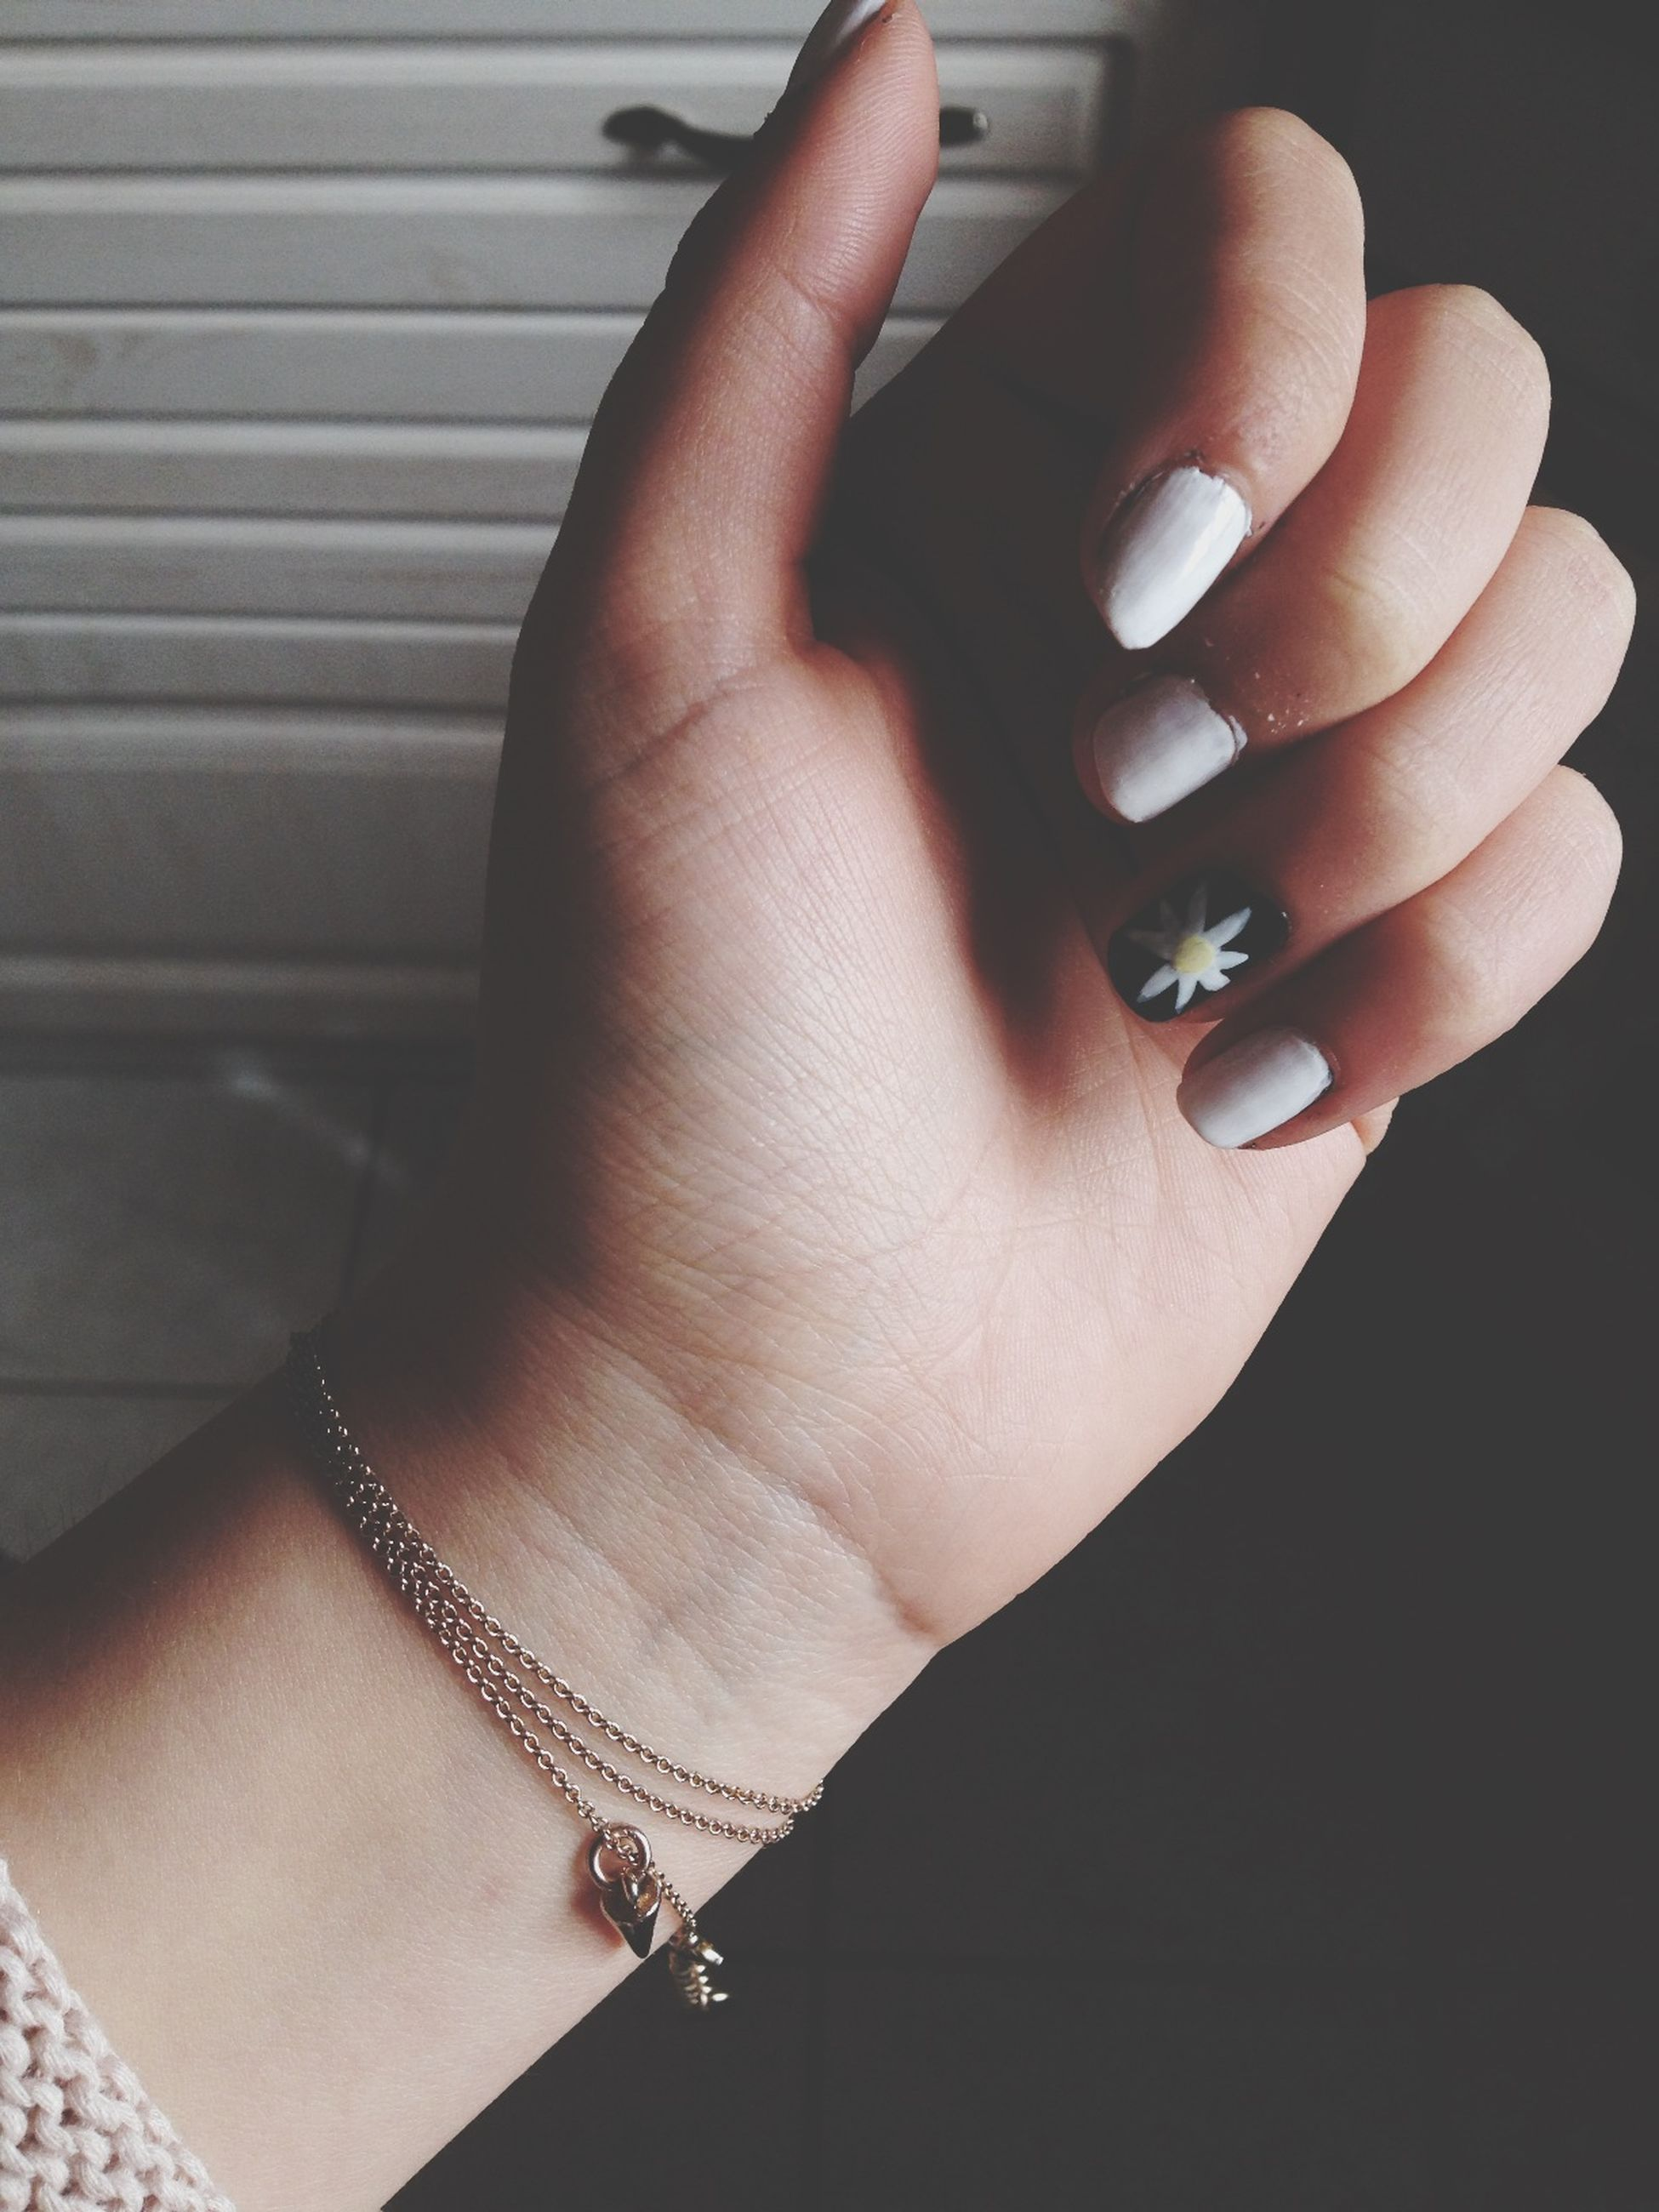 person, part of, human finger, indoors, close-up, cropped, holding, ring, personal perspective, jewelry, fashion, high angle view, nail polish, unrecognizable person, palm, human skin